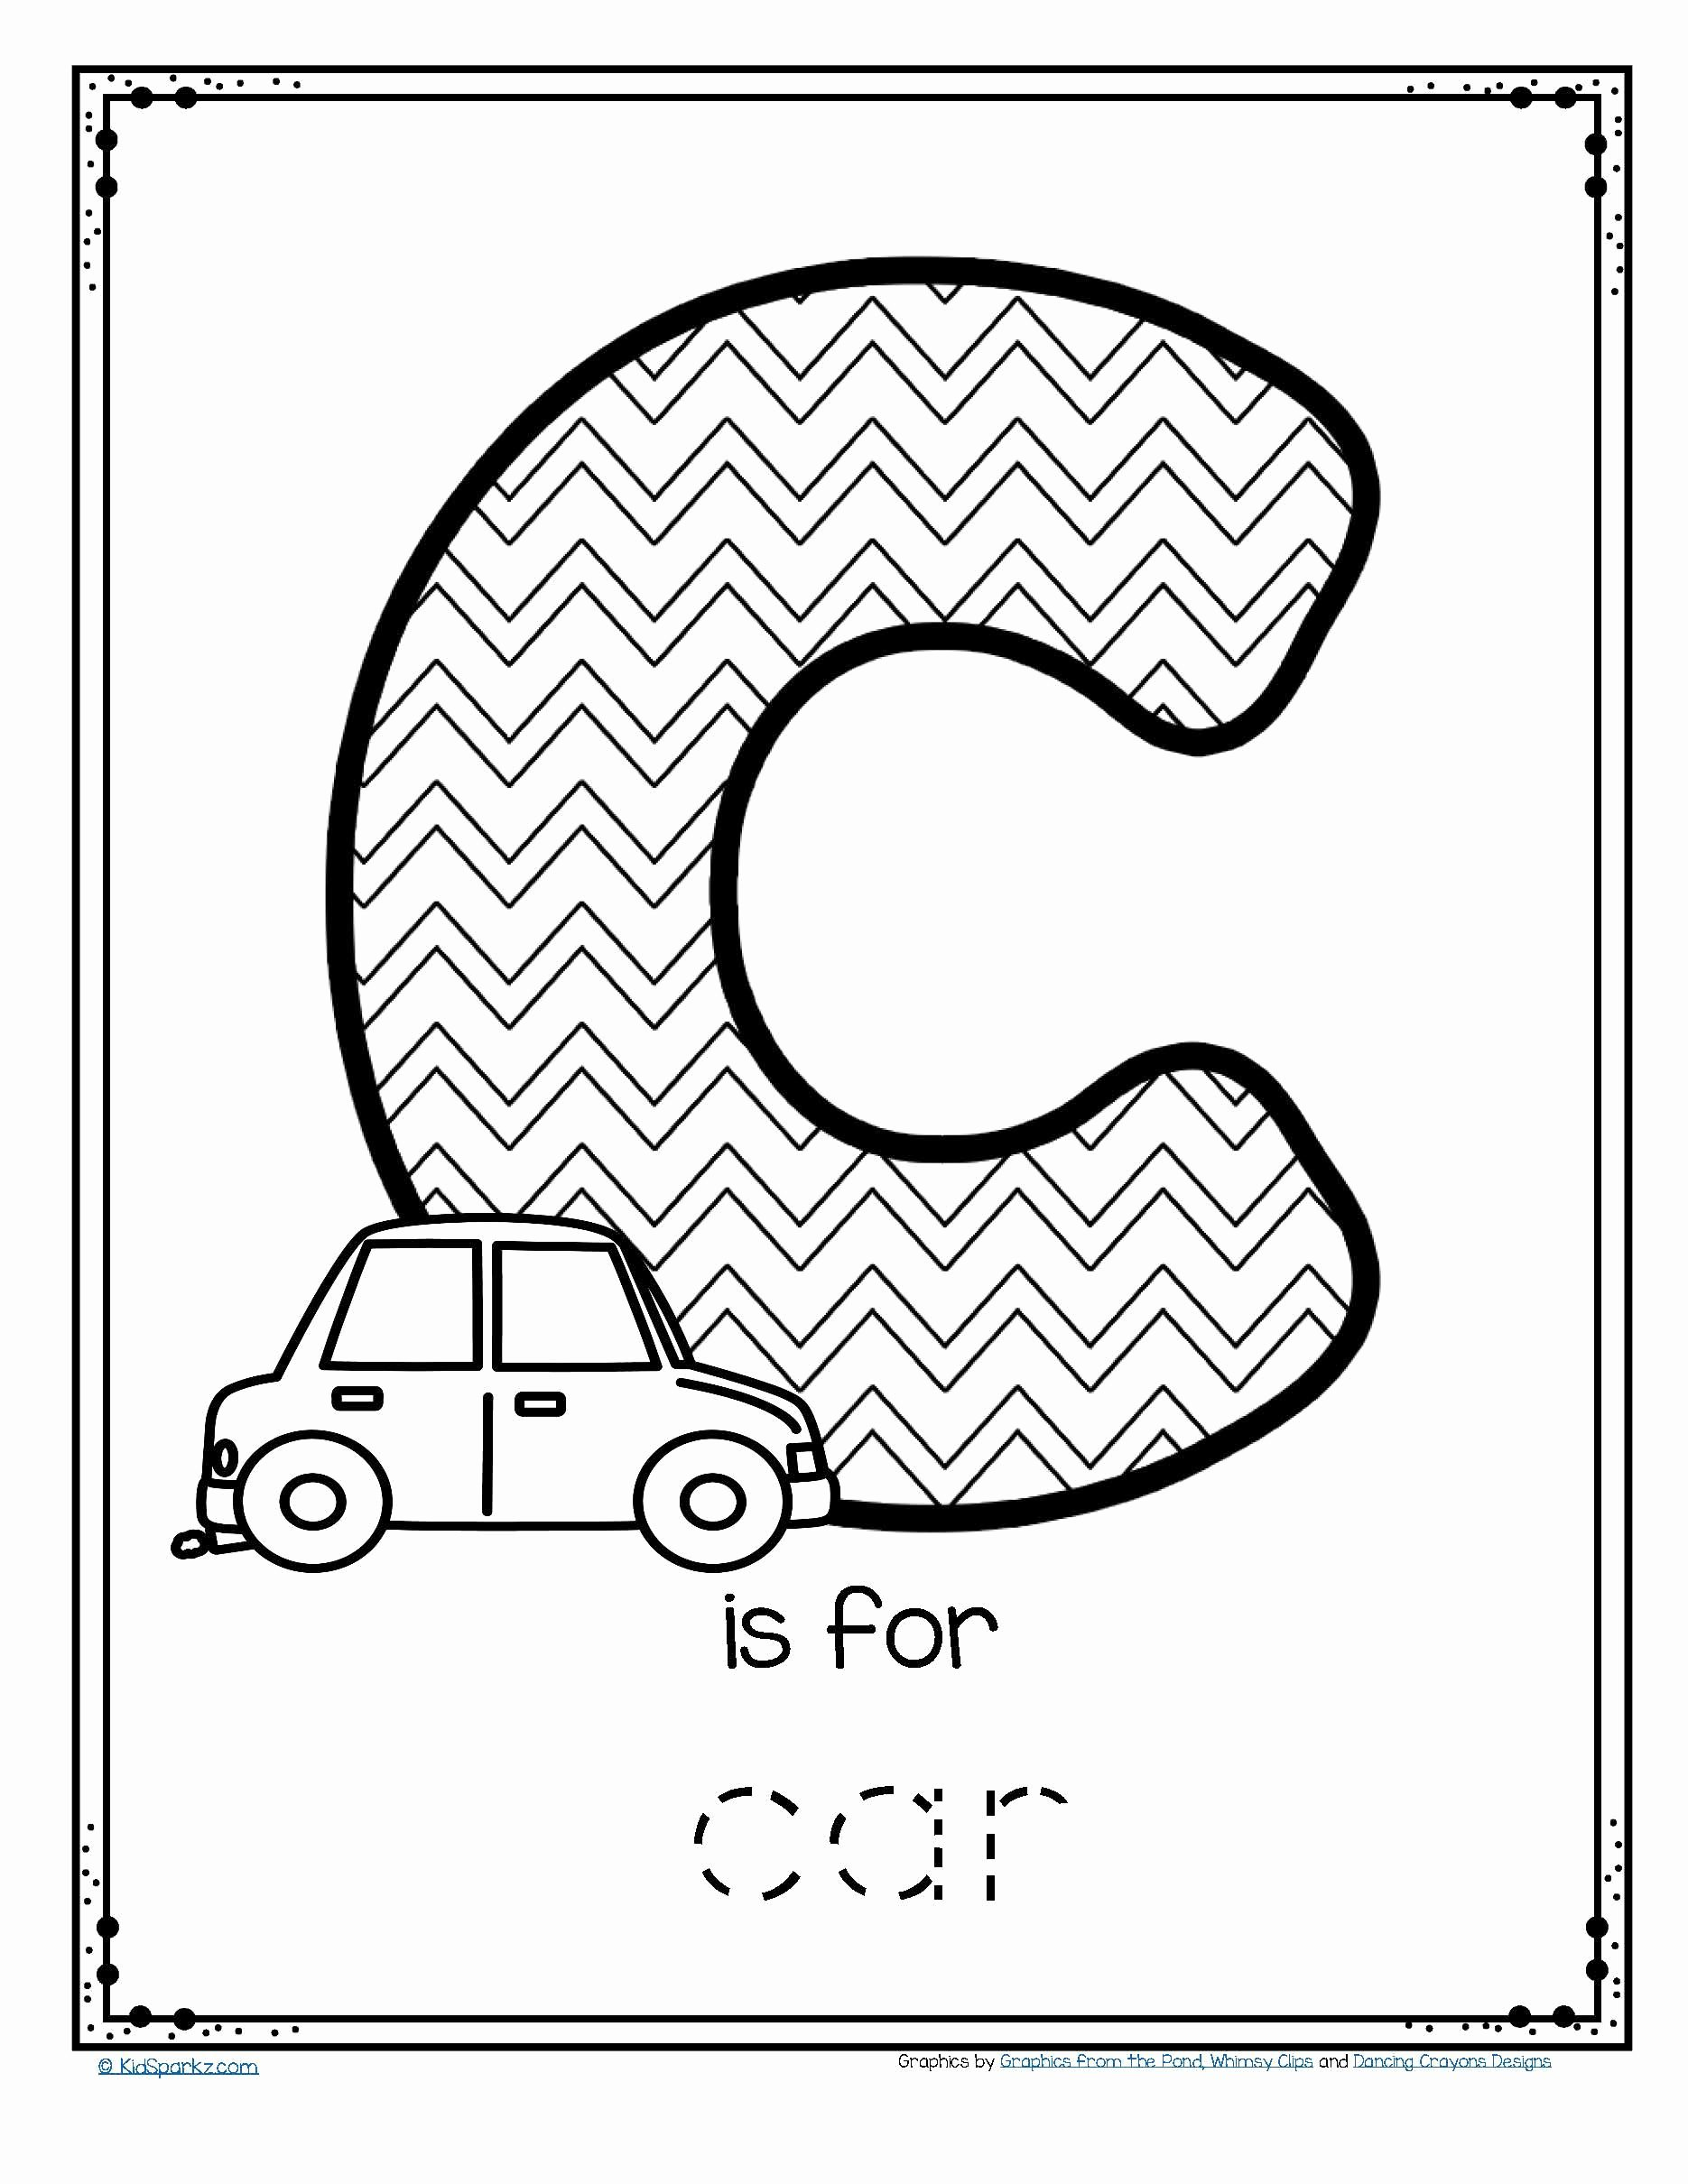 Car Worksheets for Preschoolers top Worksheets Free is for Car Trace and Color Printable